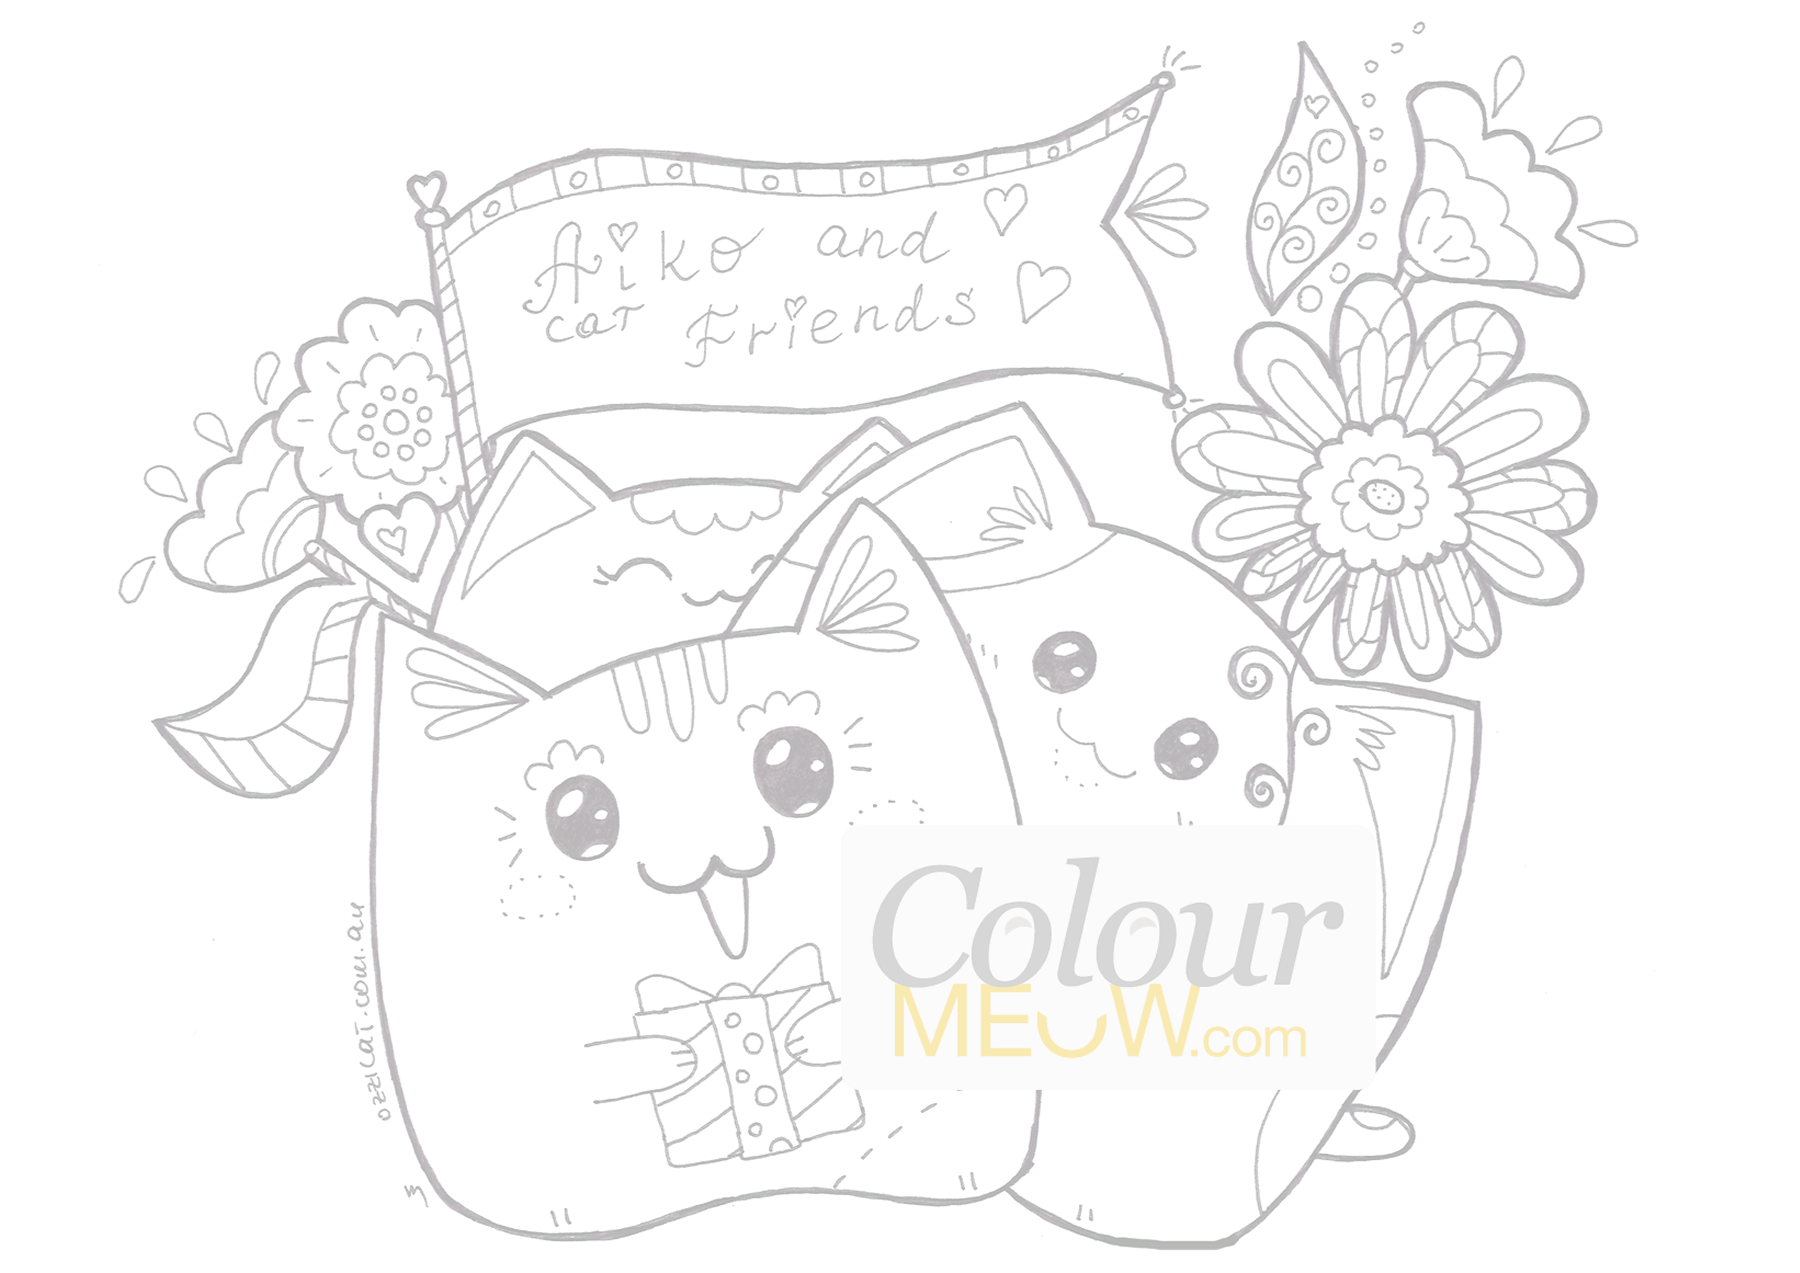 colour meow cat colouring pages for adults and kids - Drawing And Colouring Pictures For Kids